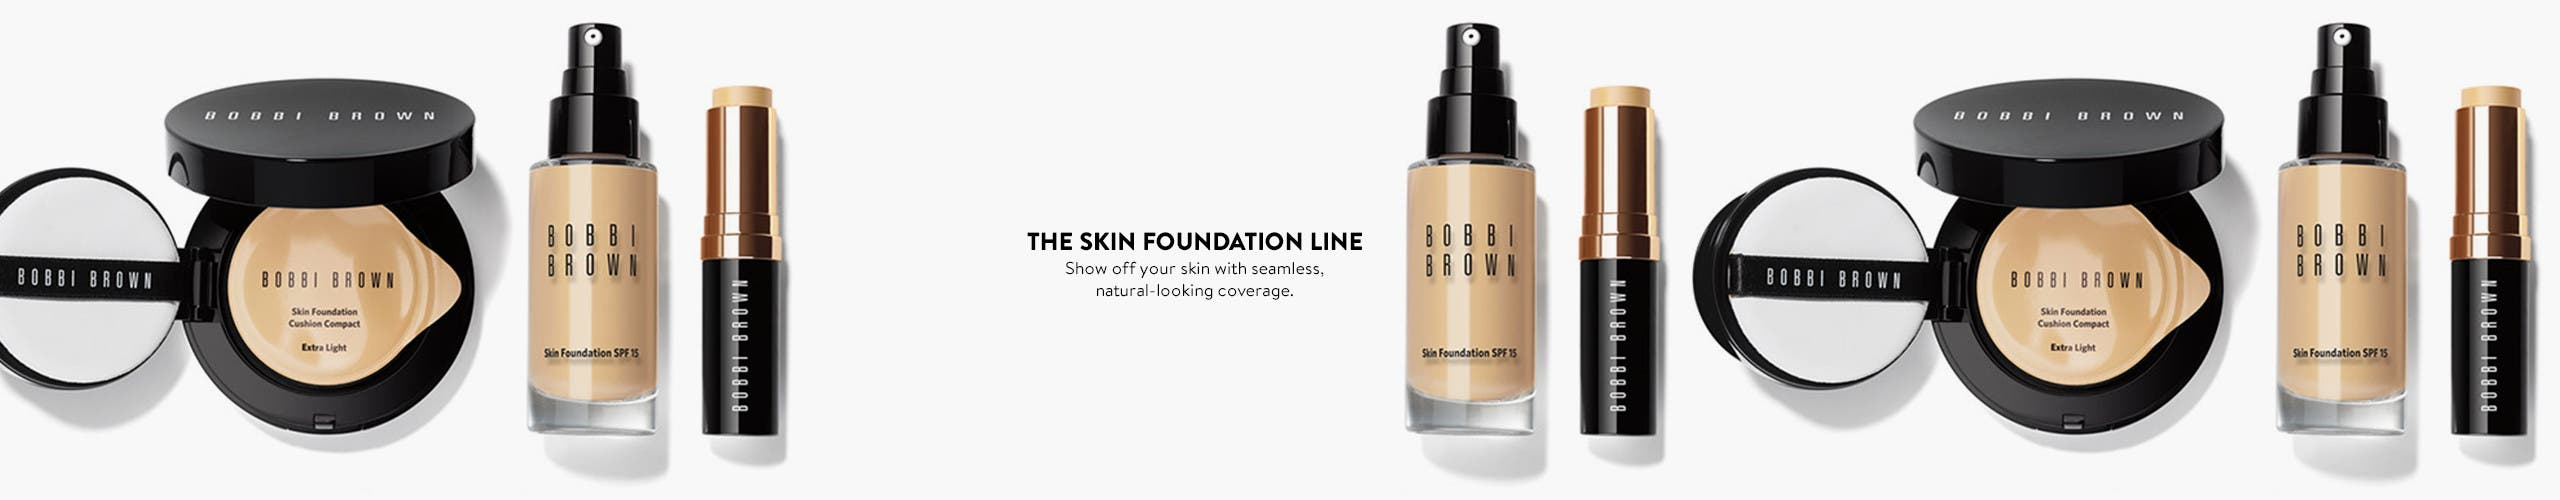 The Skin Foundation line.